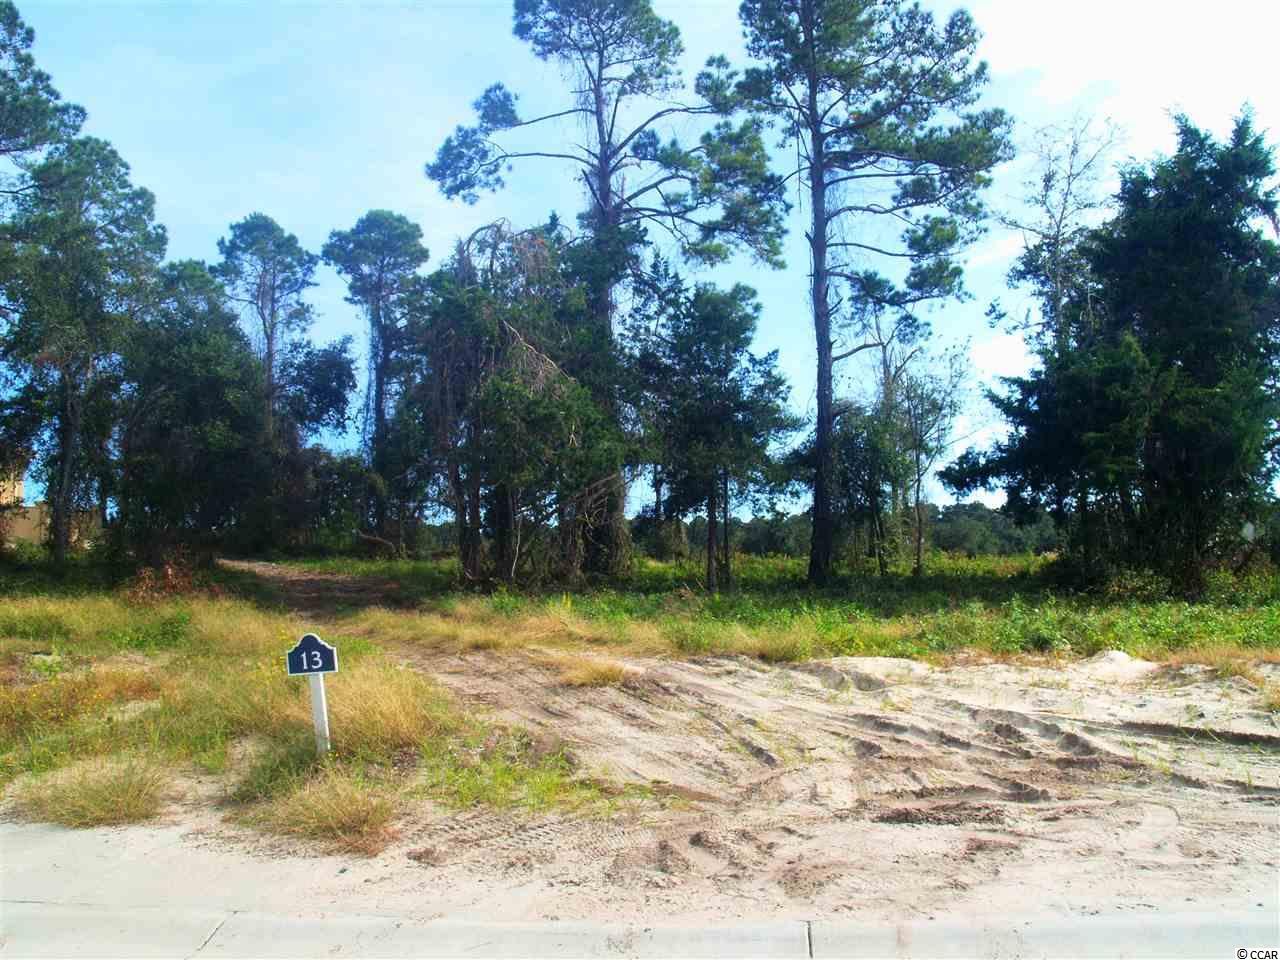 Beautiful homesite within the Grande Dunes neighborhood Villa Venezia.  Secure the spot for your future home in one of the last available new home neighborhoods in the exclusive Golf Village section of Grande Dunes.  Choose your builder, or visit the onsite model already in place to get great ideas of the potential.  This neighborhood is already mostly built with only a few homesites remaining.  This property is located in South Carolina's premier coastal community in Myrtle Beach; Grande Dunes.  Stretching from the Ocean to the Carolina Bays Preserve, this 2200 acre development is amenity-rich and filled with lifestyle opportunities unrivaled in the market.  Owners at Grande Dunes enjoy a 25,000 square foot Ocean Club that boasts exquisite dining, oceanfront pools with food & beverage service, along with meeting rooms and fun activities.  Additionally, the community has two 18-hole golf courses, including the area's only truly private course designed by Nick Price, along with several on-site restaurants, deep water marina, Har-tru tennis facility and miles or biking/walking trails!  Please visit our sales gallery located in Grande Dunes Marketplace next to Lowes Foods to learn more about this amazing community you can call home.